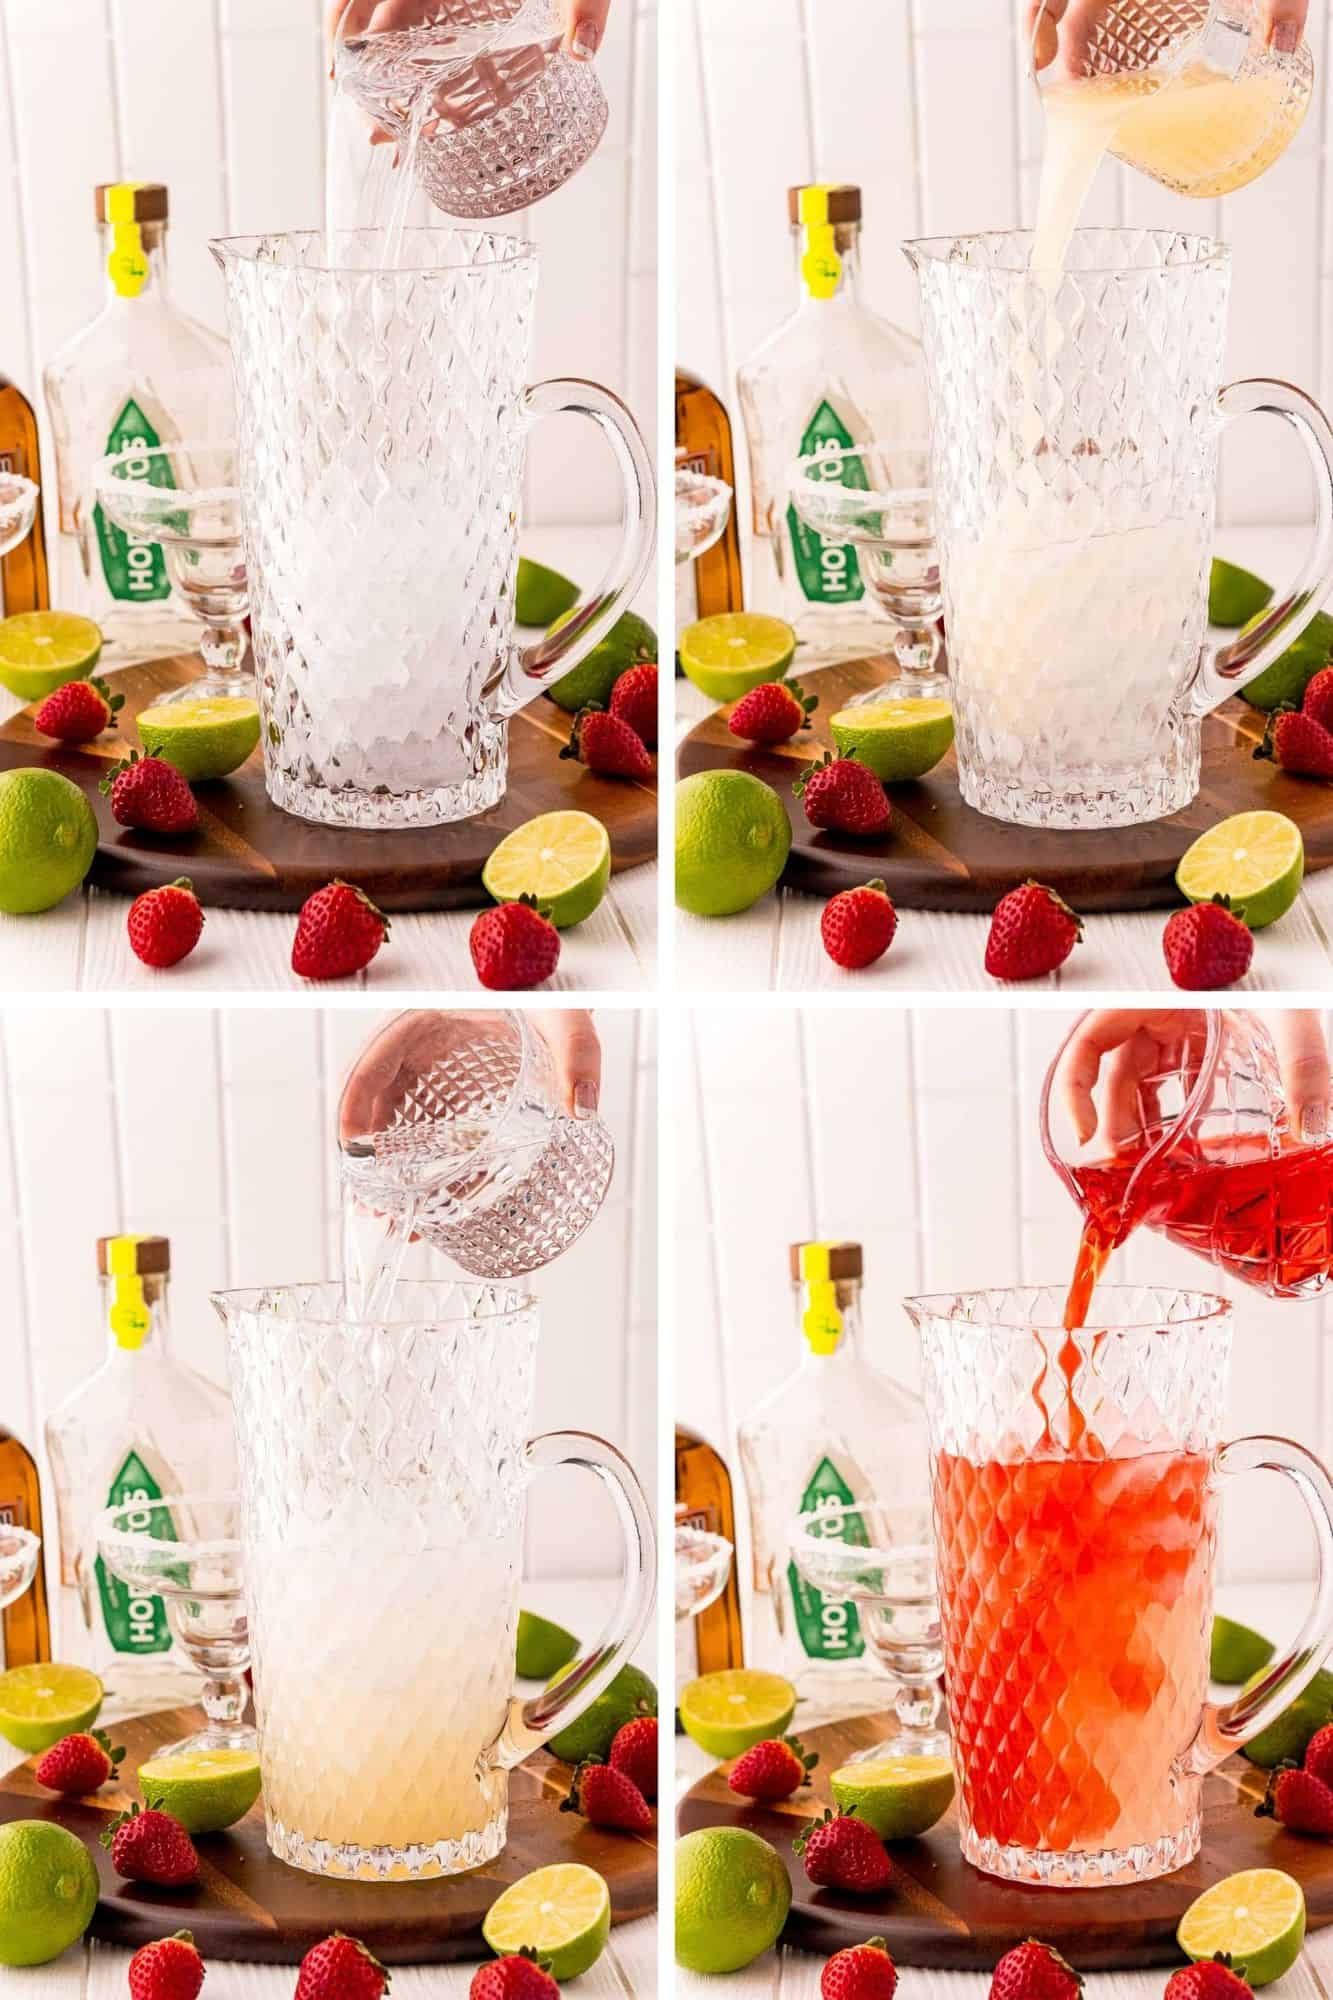 Four images of various liquids being poured into a large clear glass pitcher.